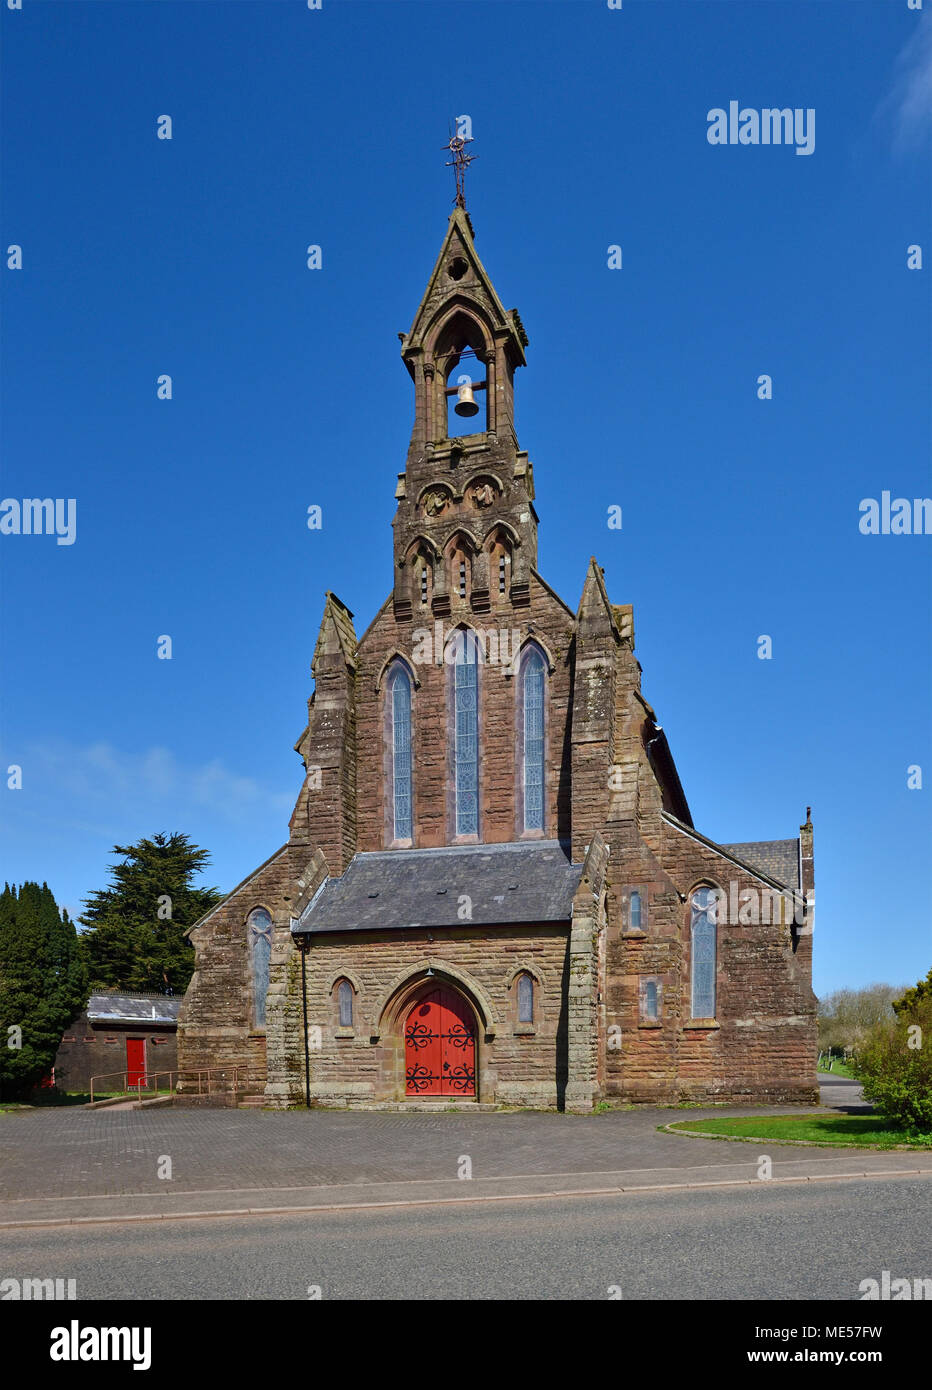 church-of-saint-mary-roman-catholic-cleator-cumbria-england-united-kingdom-europe-ME57FW.jpg